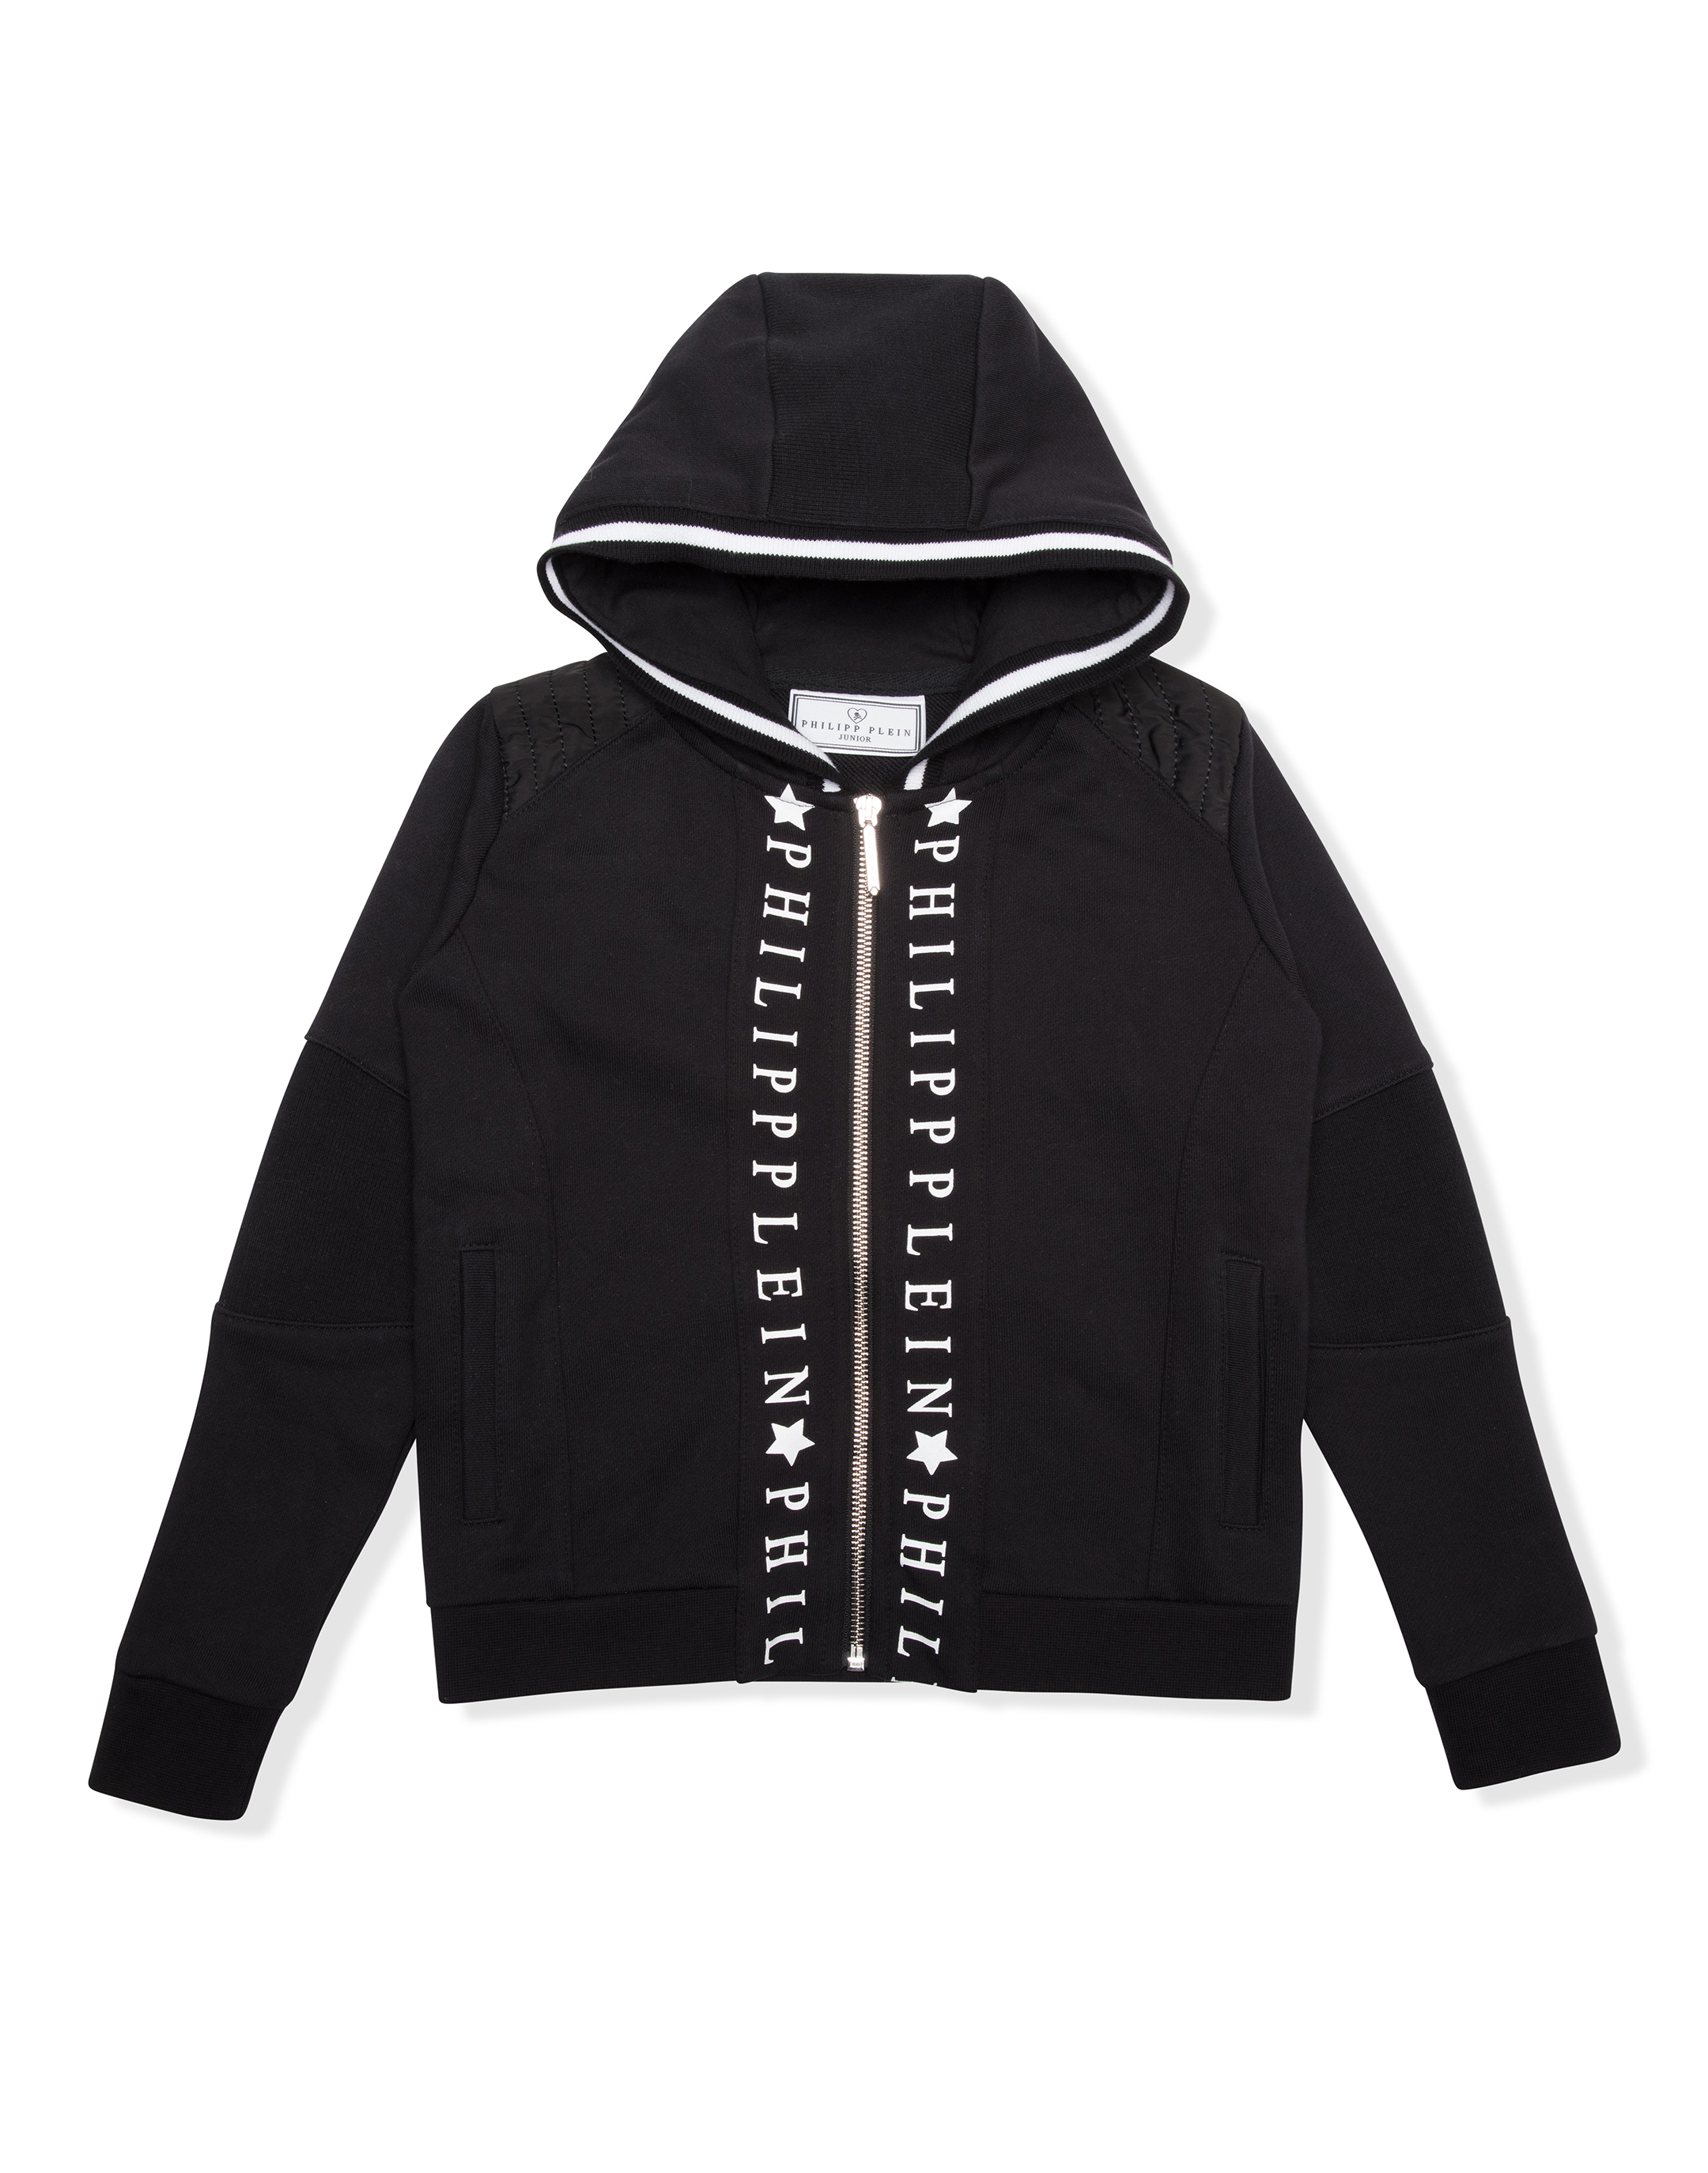 Hoodie Sweatjacket Good Guys Philipp Plein Junior - Good guys sweatshirt